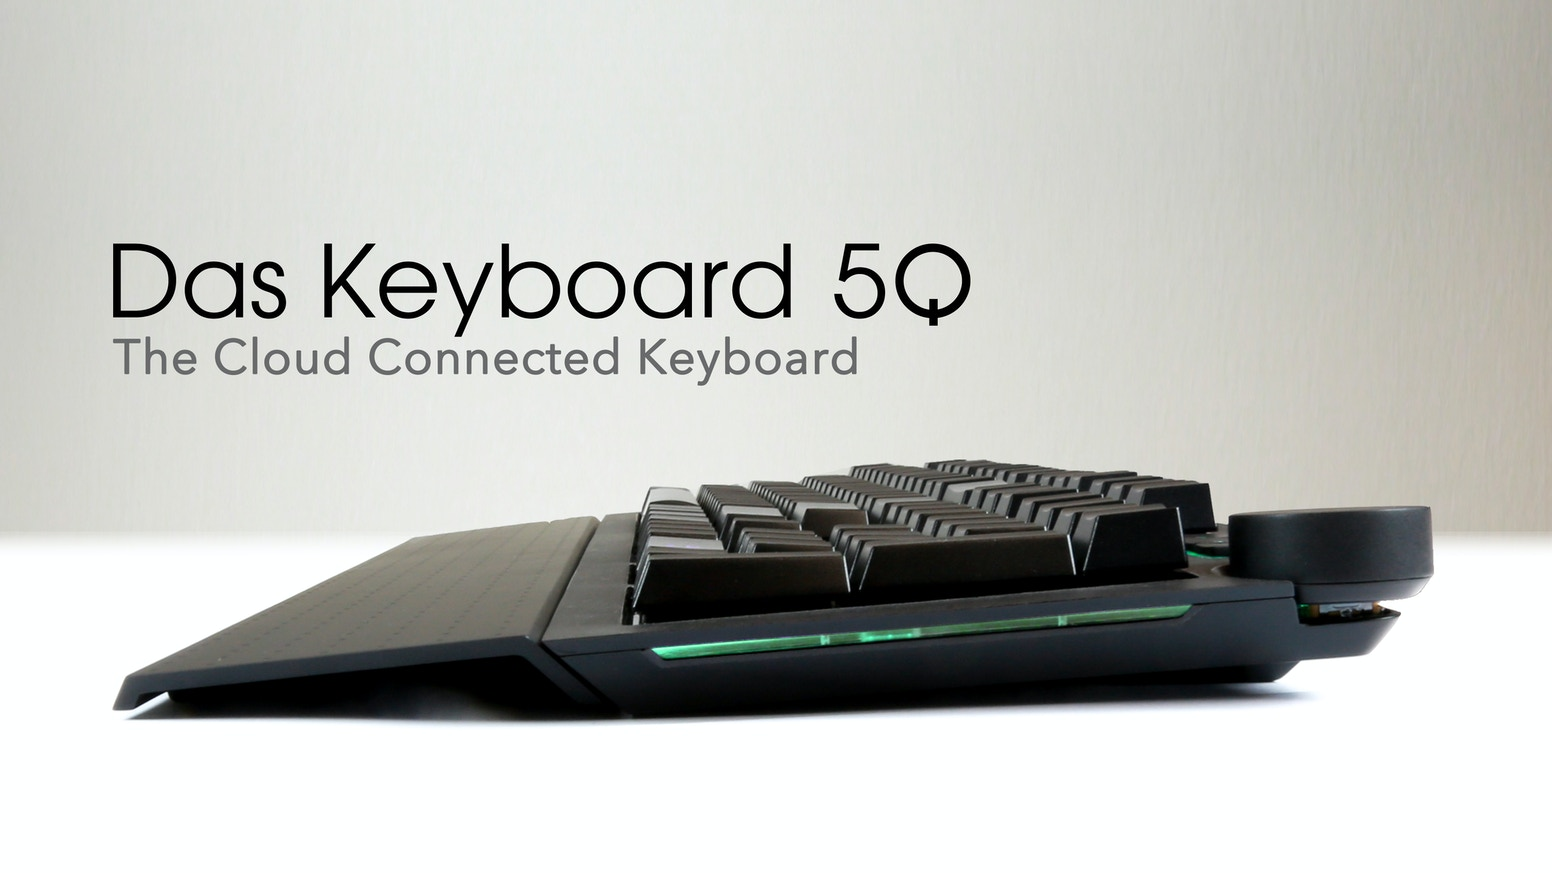 Das Keyboard 5Q is smart mechanical keyboard with an open API that allows each key to be color-controlled over the Internet.